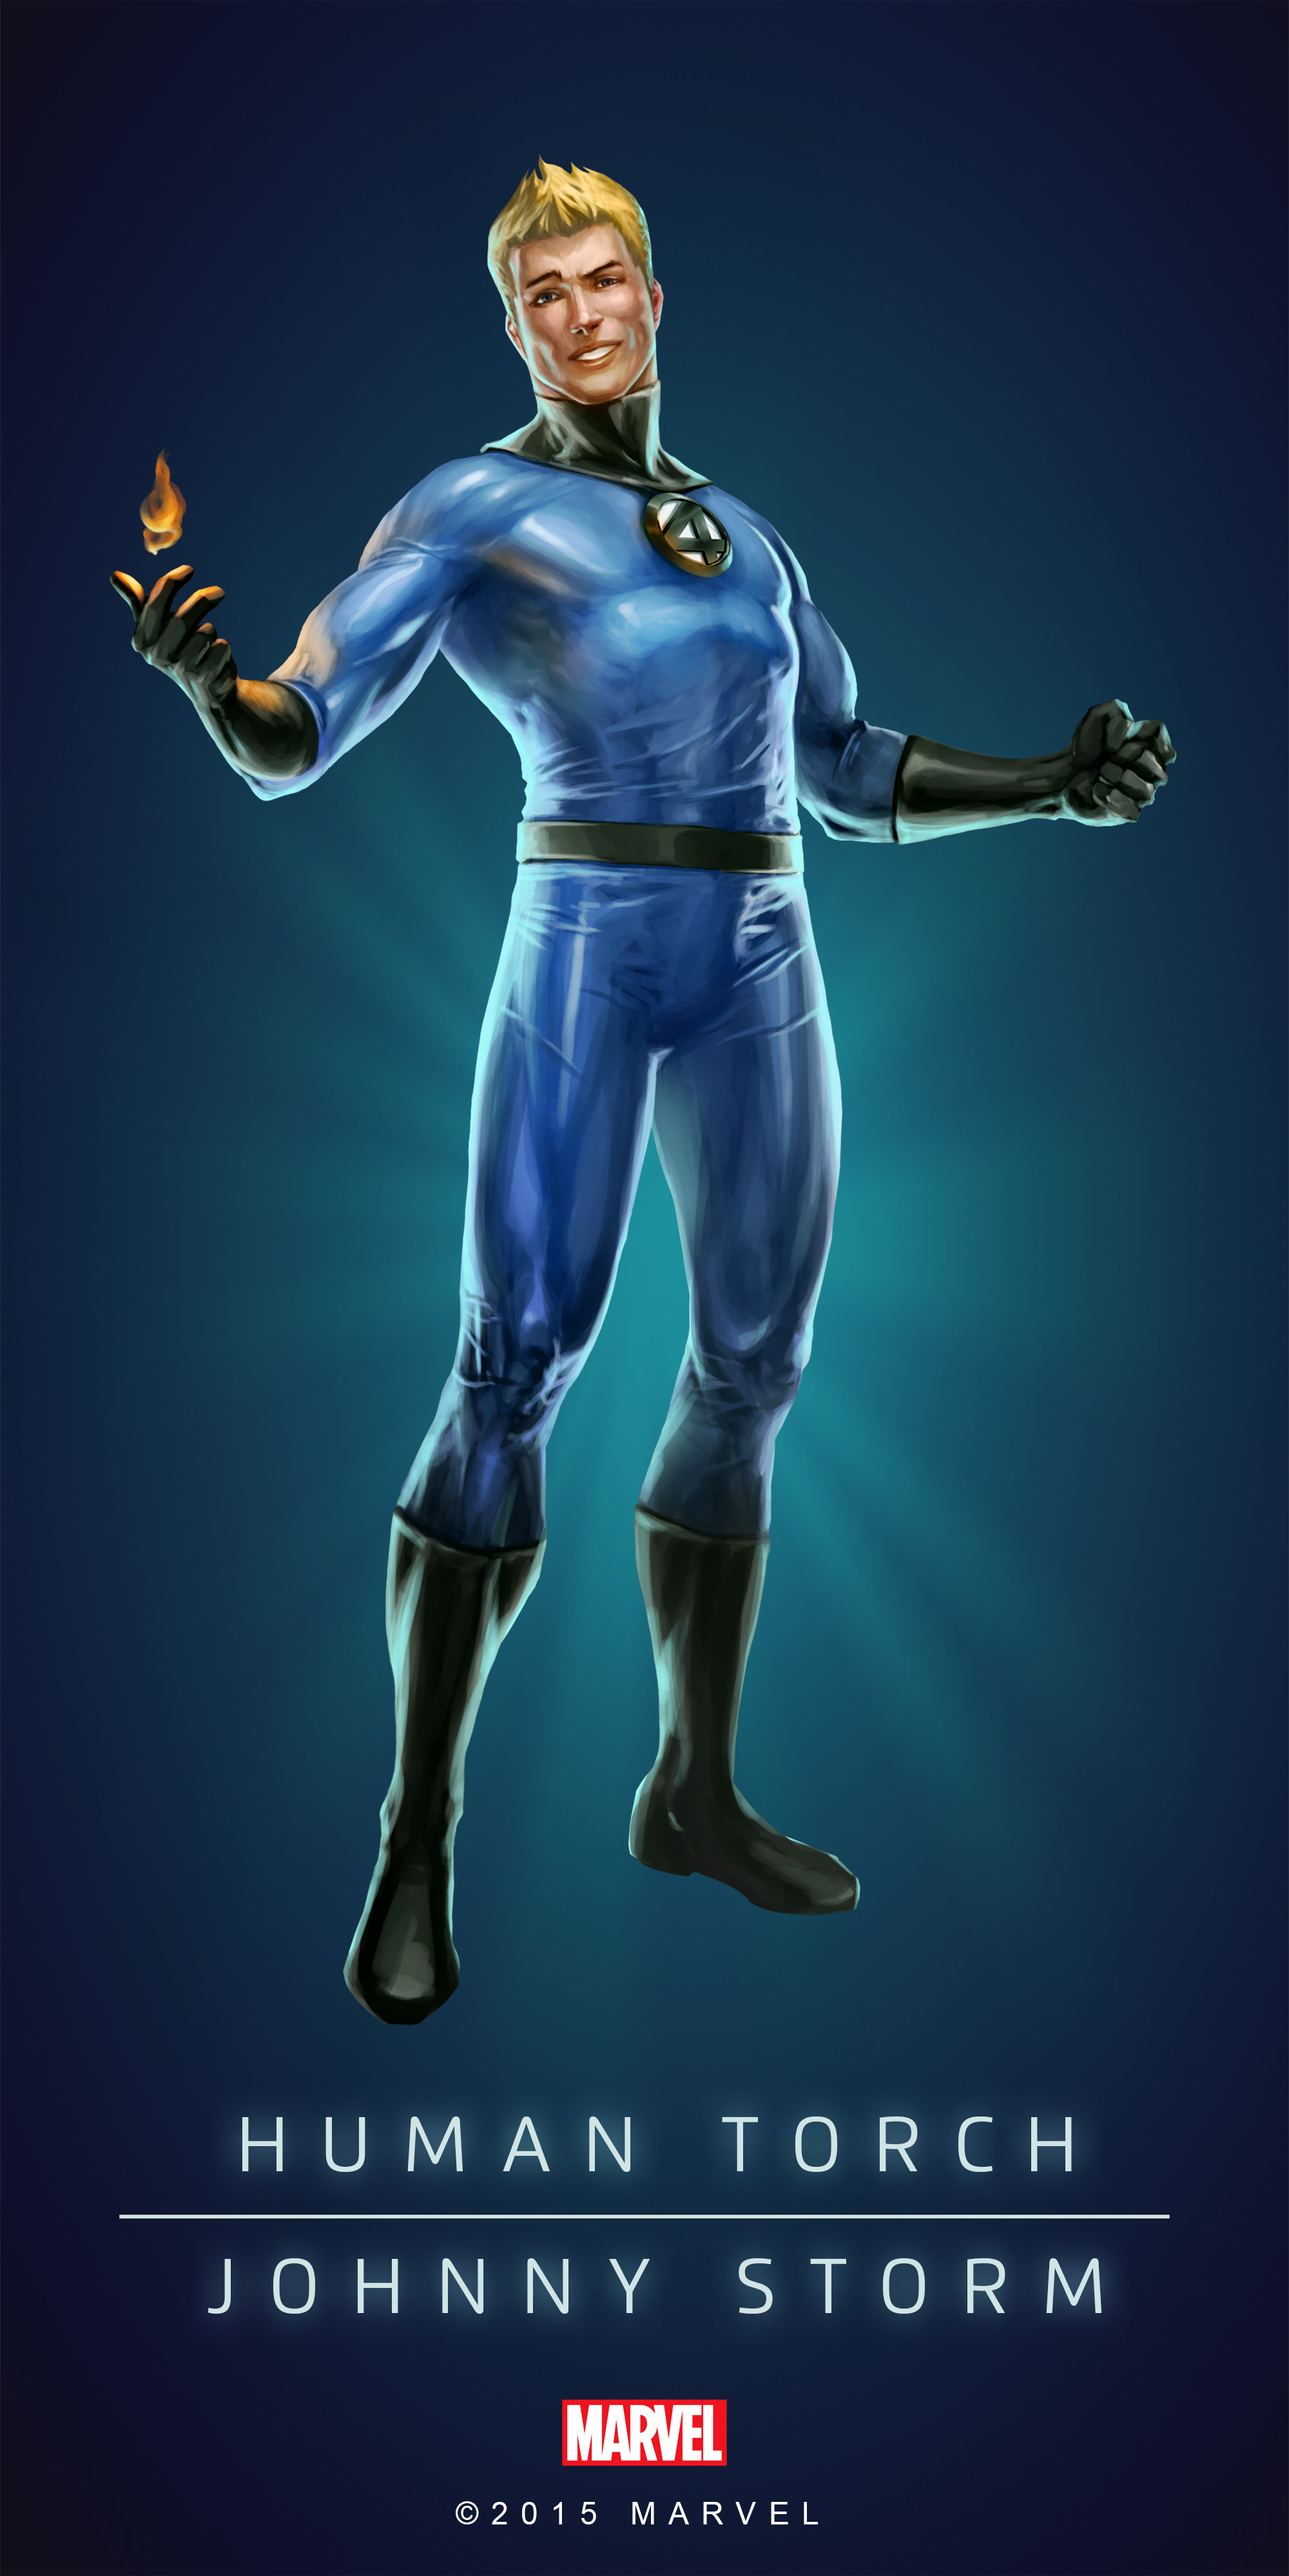 Human_Torch_Johnny_Storm_Poster_01.png (2000×3997)